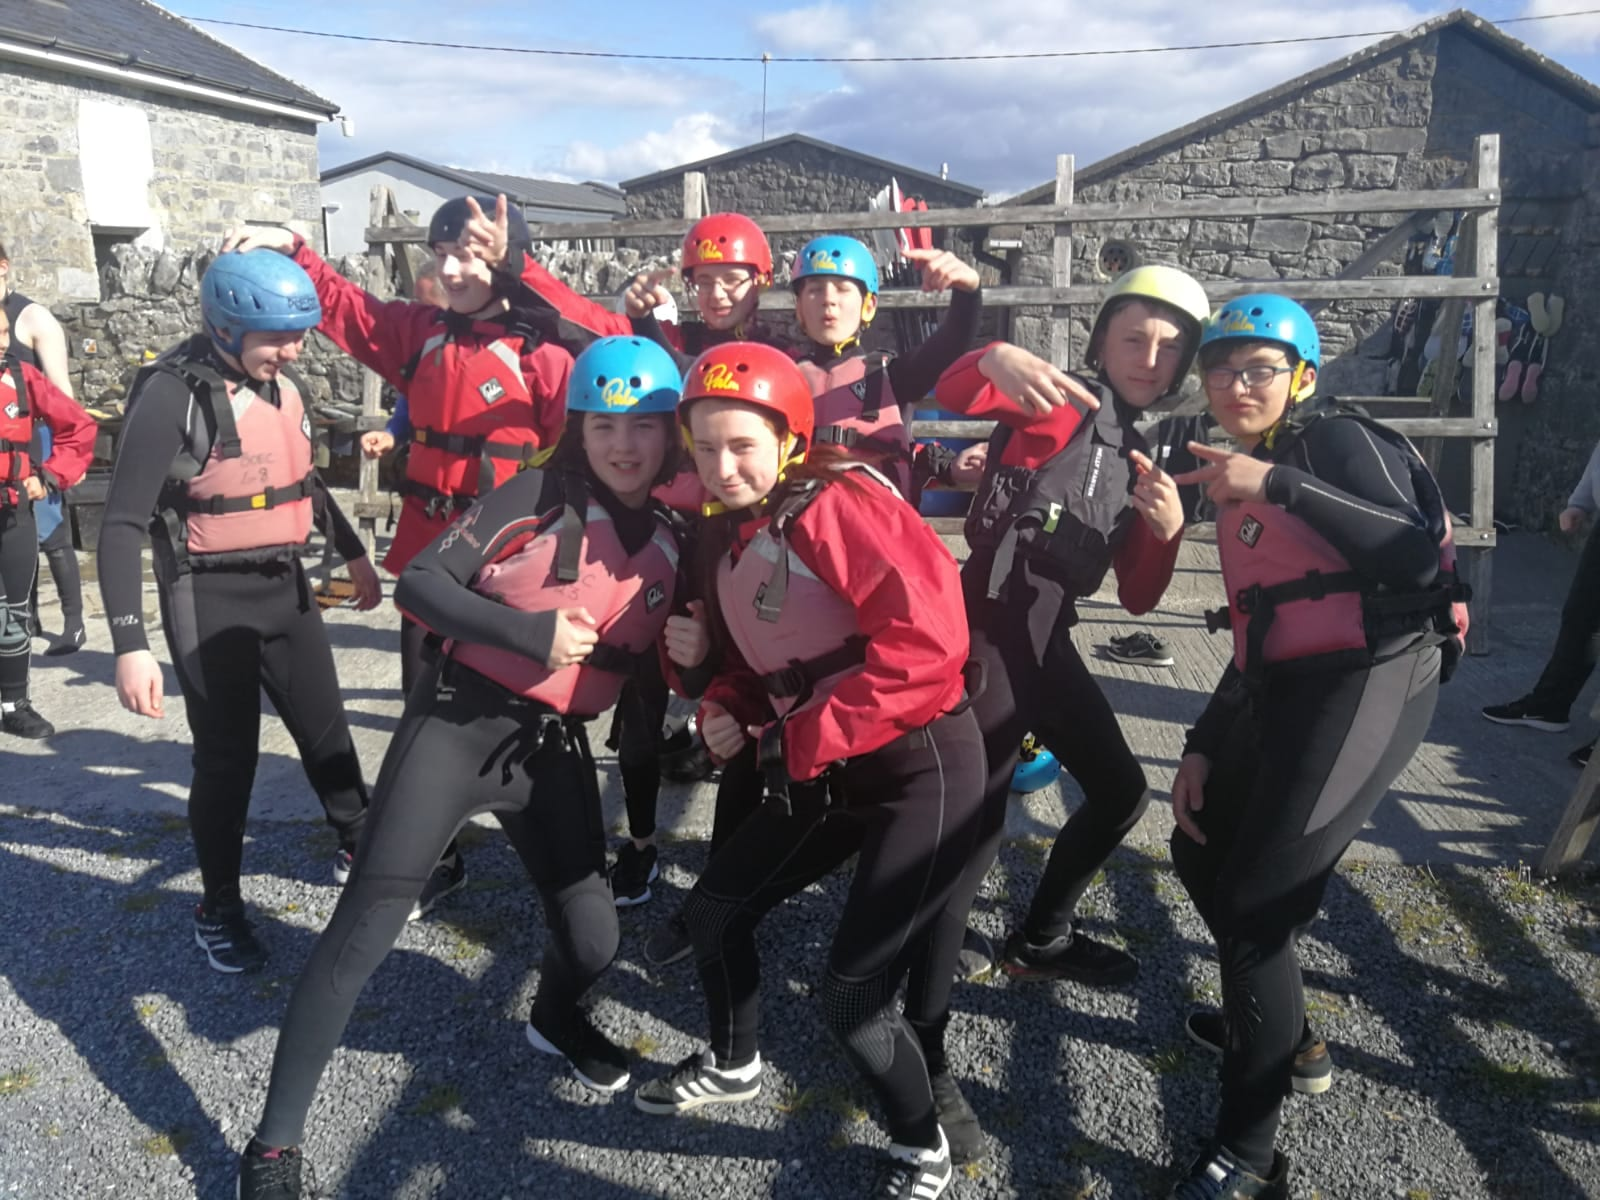 Some First Year Students about to get ready for kayaking and raft building in the Burren